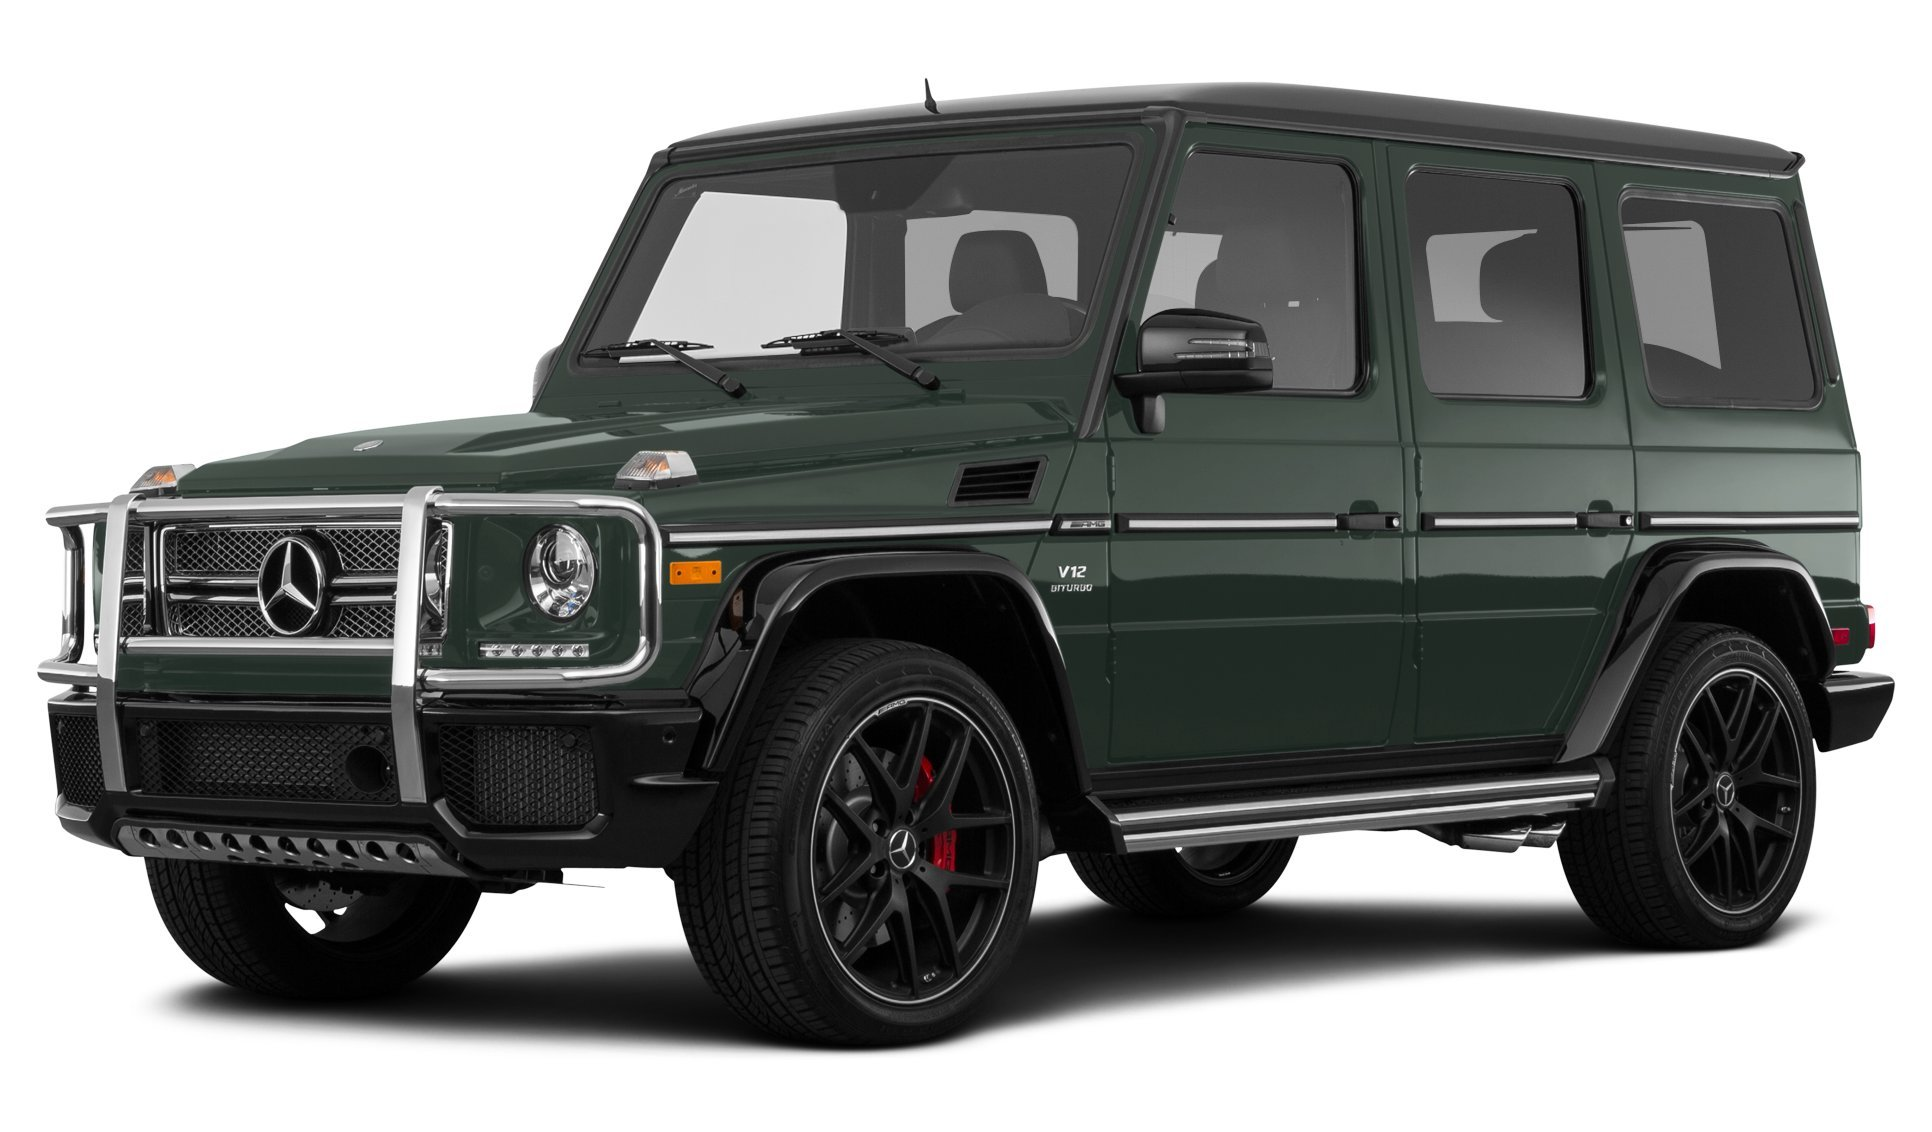 2017 mercedes benz g63 amg reviews images and specs vehicles. Black Bedroom Furniture Sets. Home Design Ideas